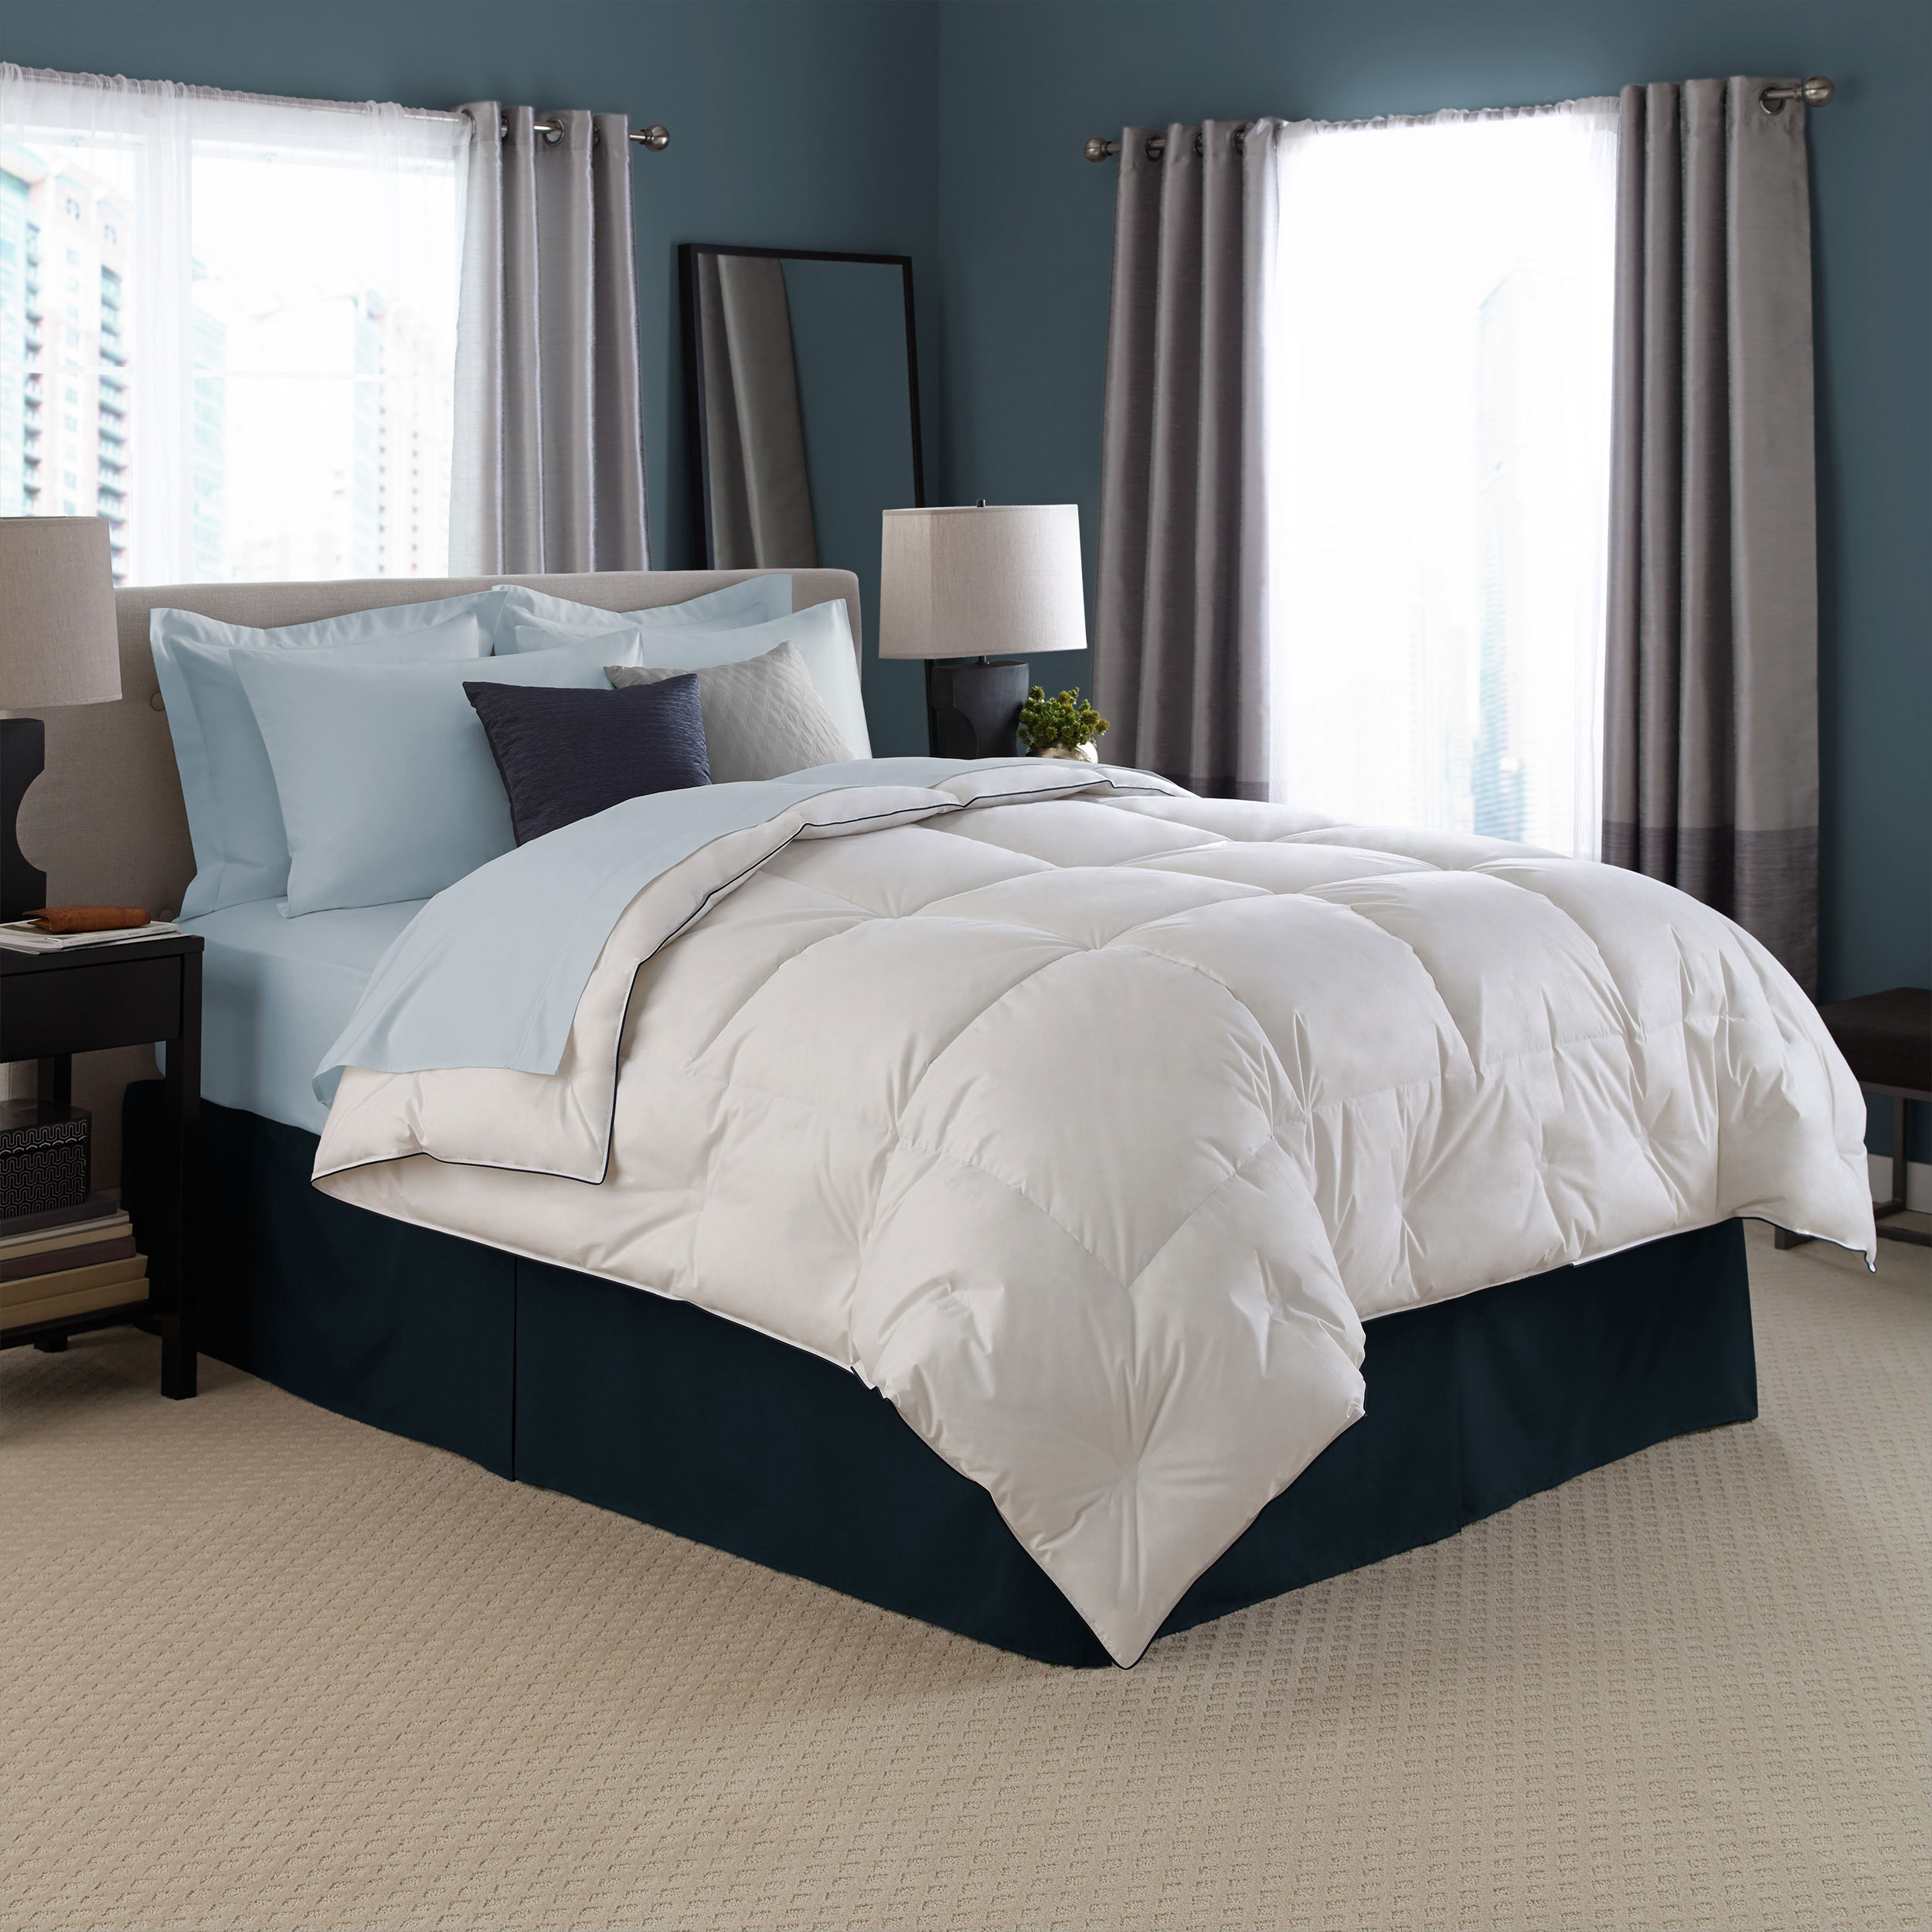 Pacific Coast® Online Bedding Stores Hotel Bedding